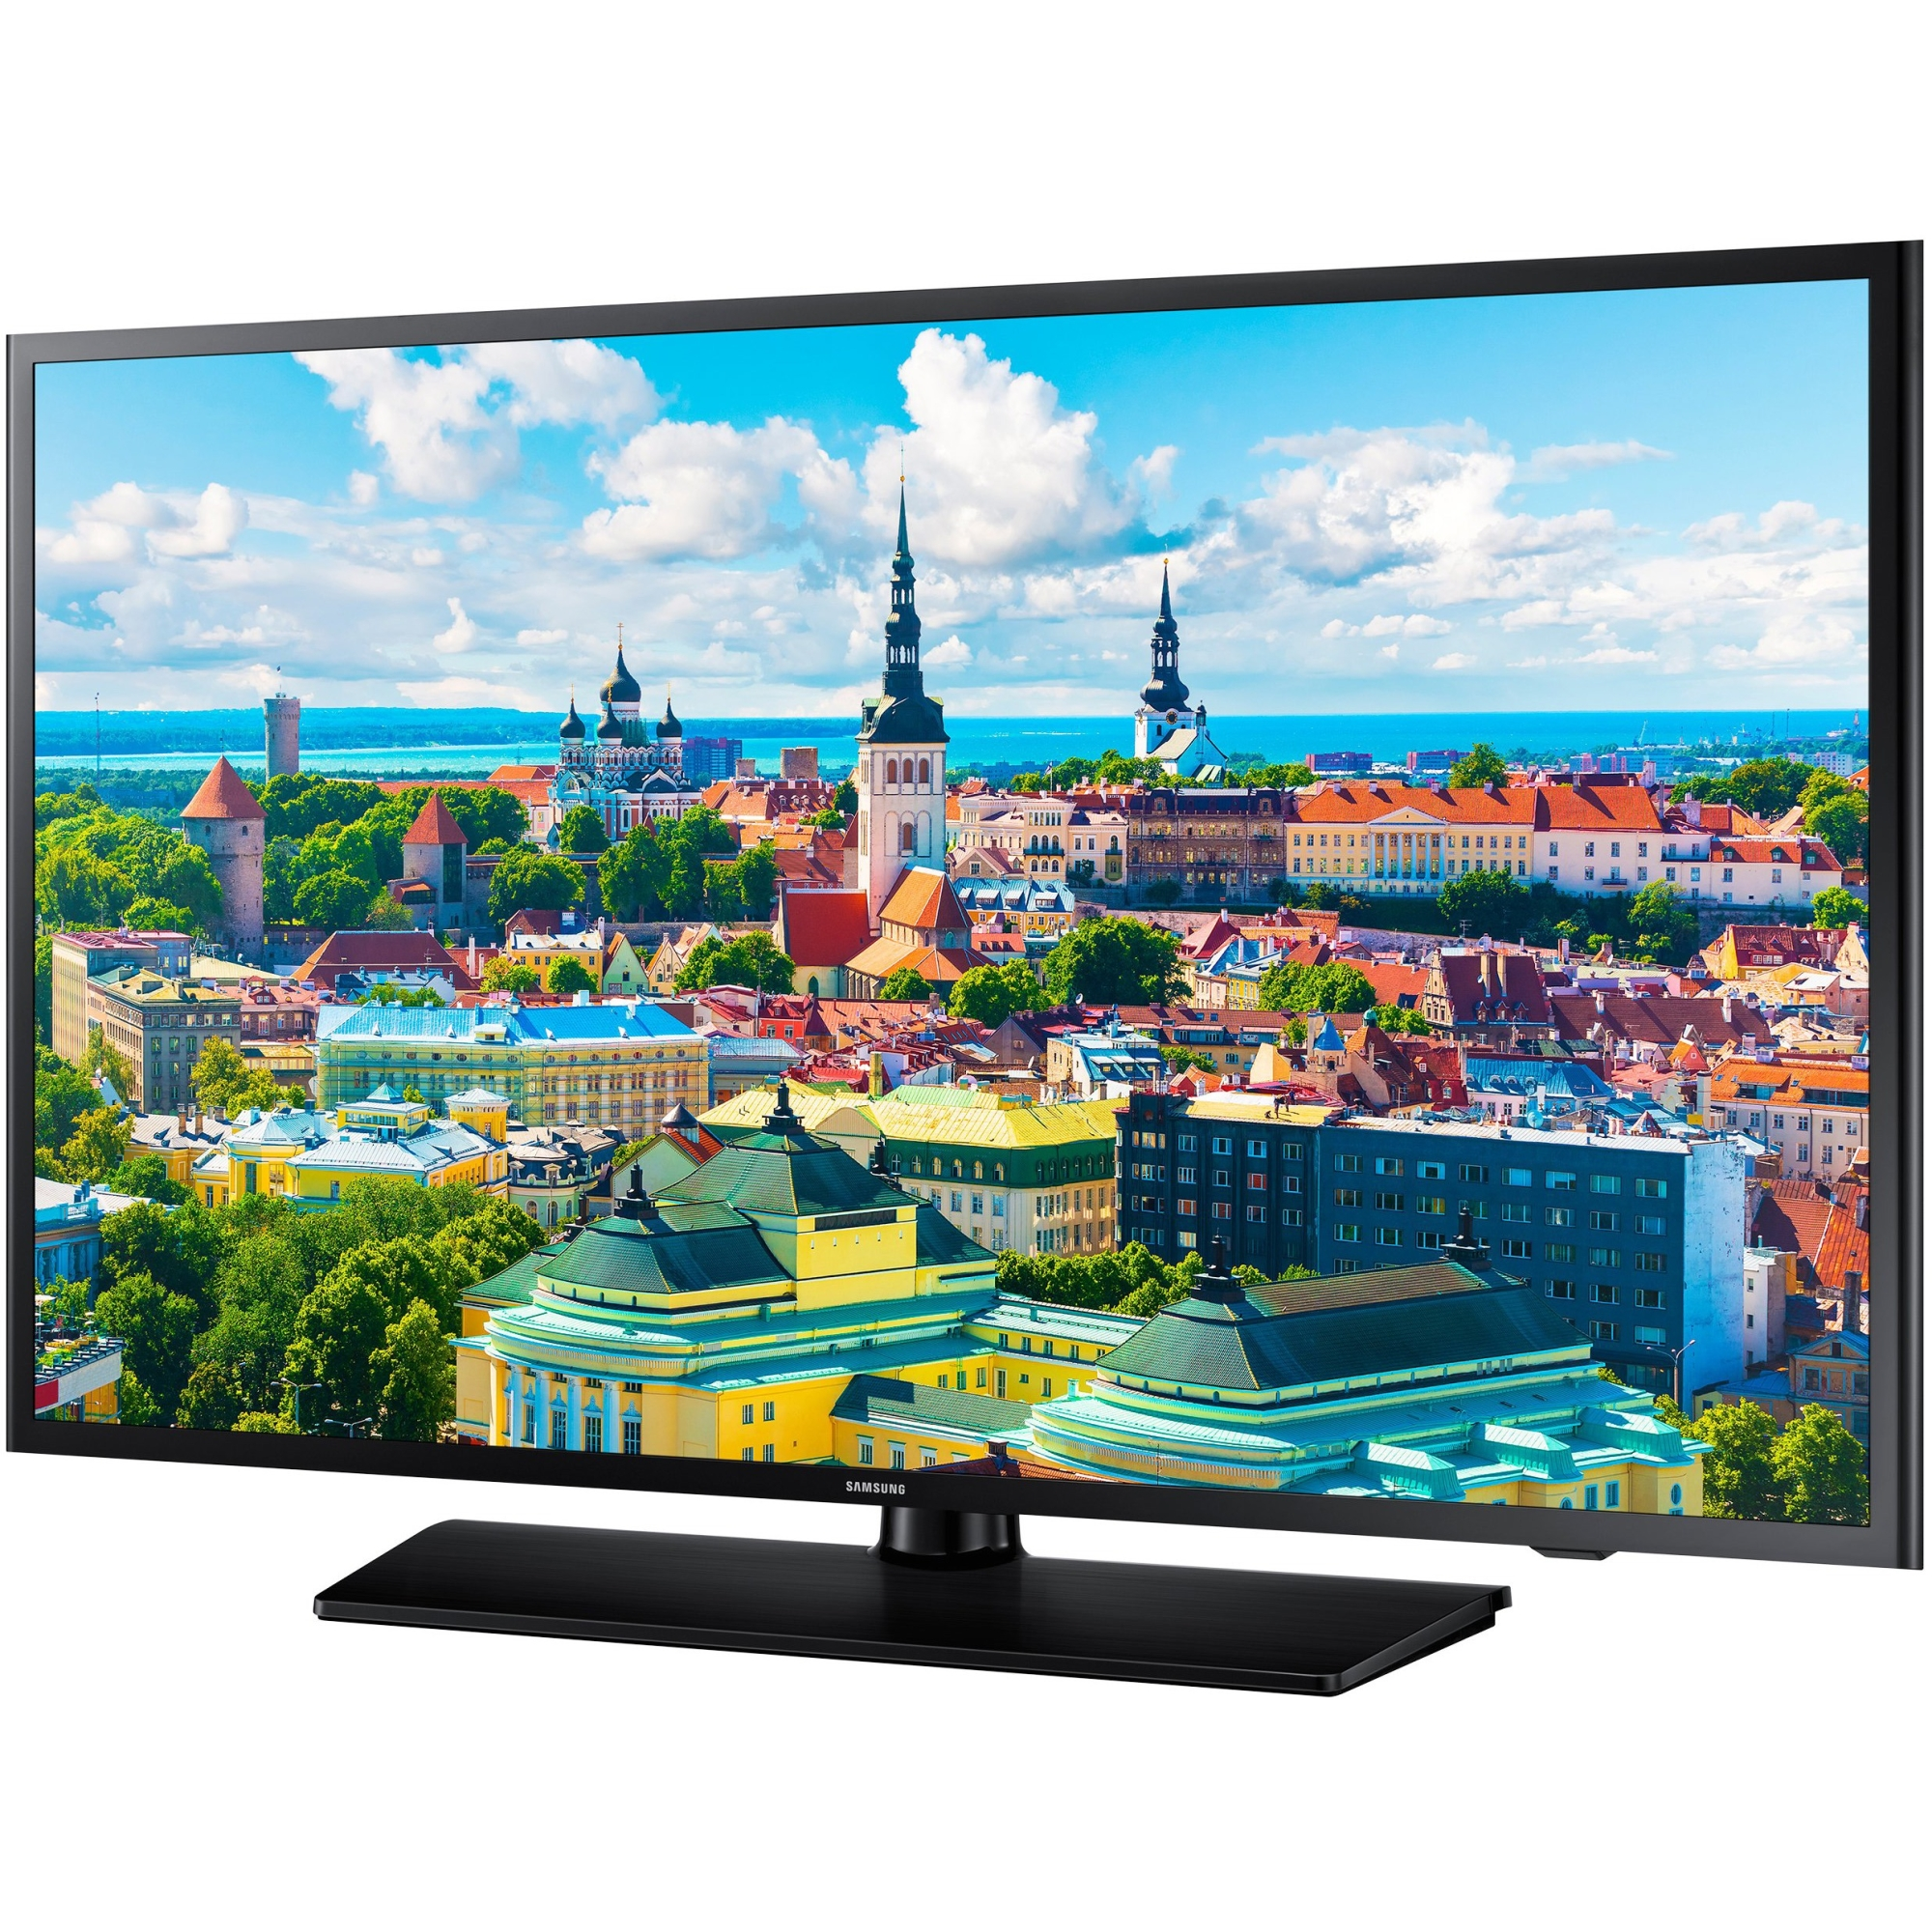 Samsung - HG40ND477SFXZA - Samsung 477 HG40ND477SF 40 1080p LED-LCD TV - 16:9 - HDTV 1080p - Black - ATSC - 178 / 178 -